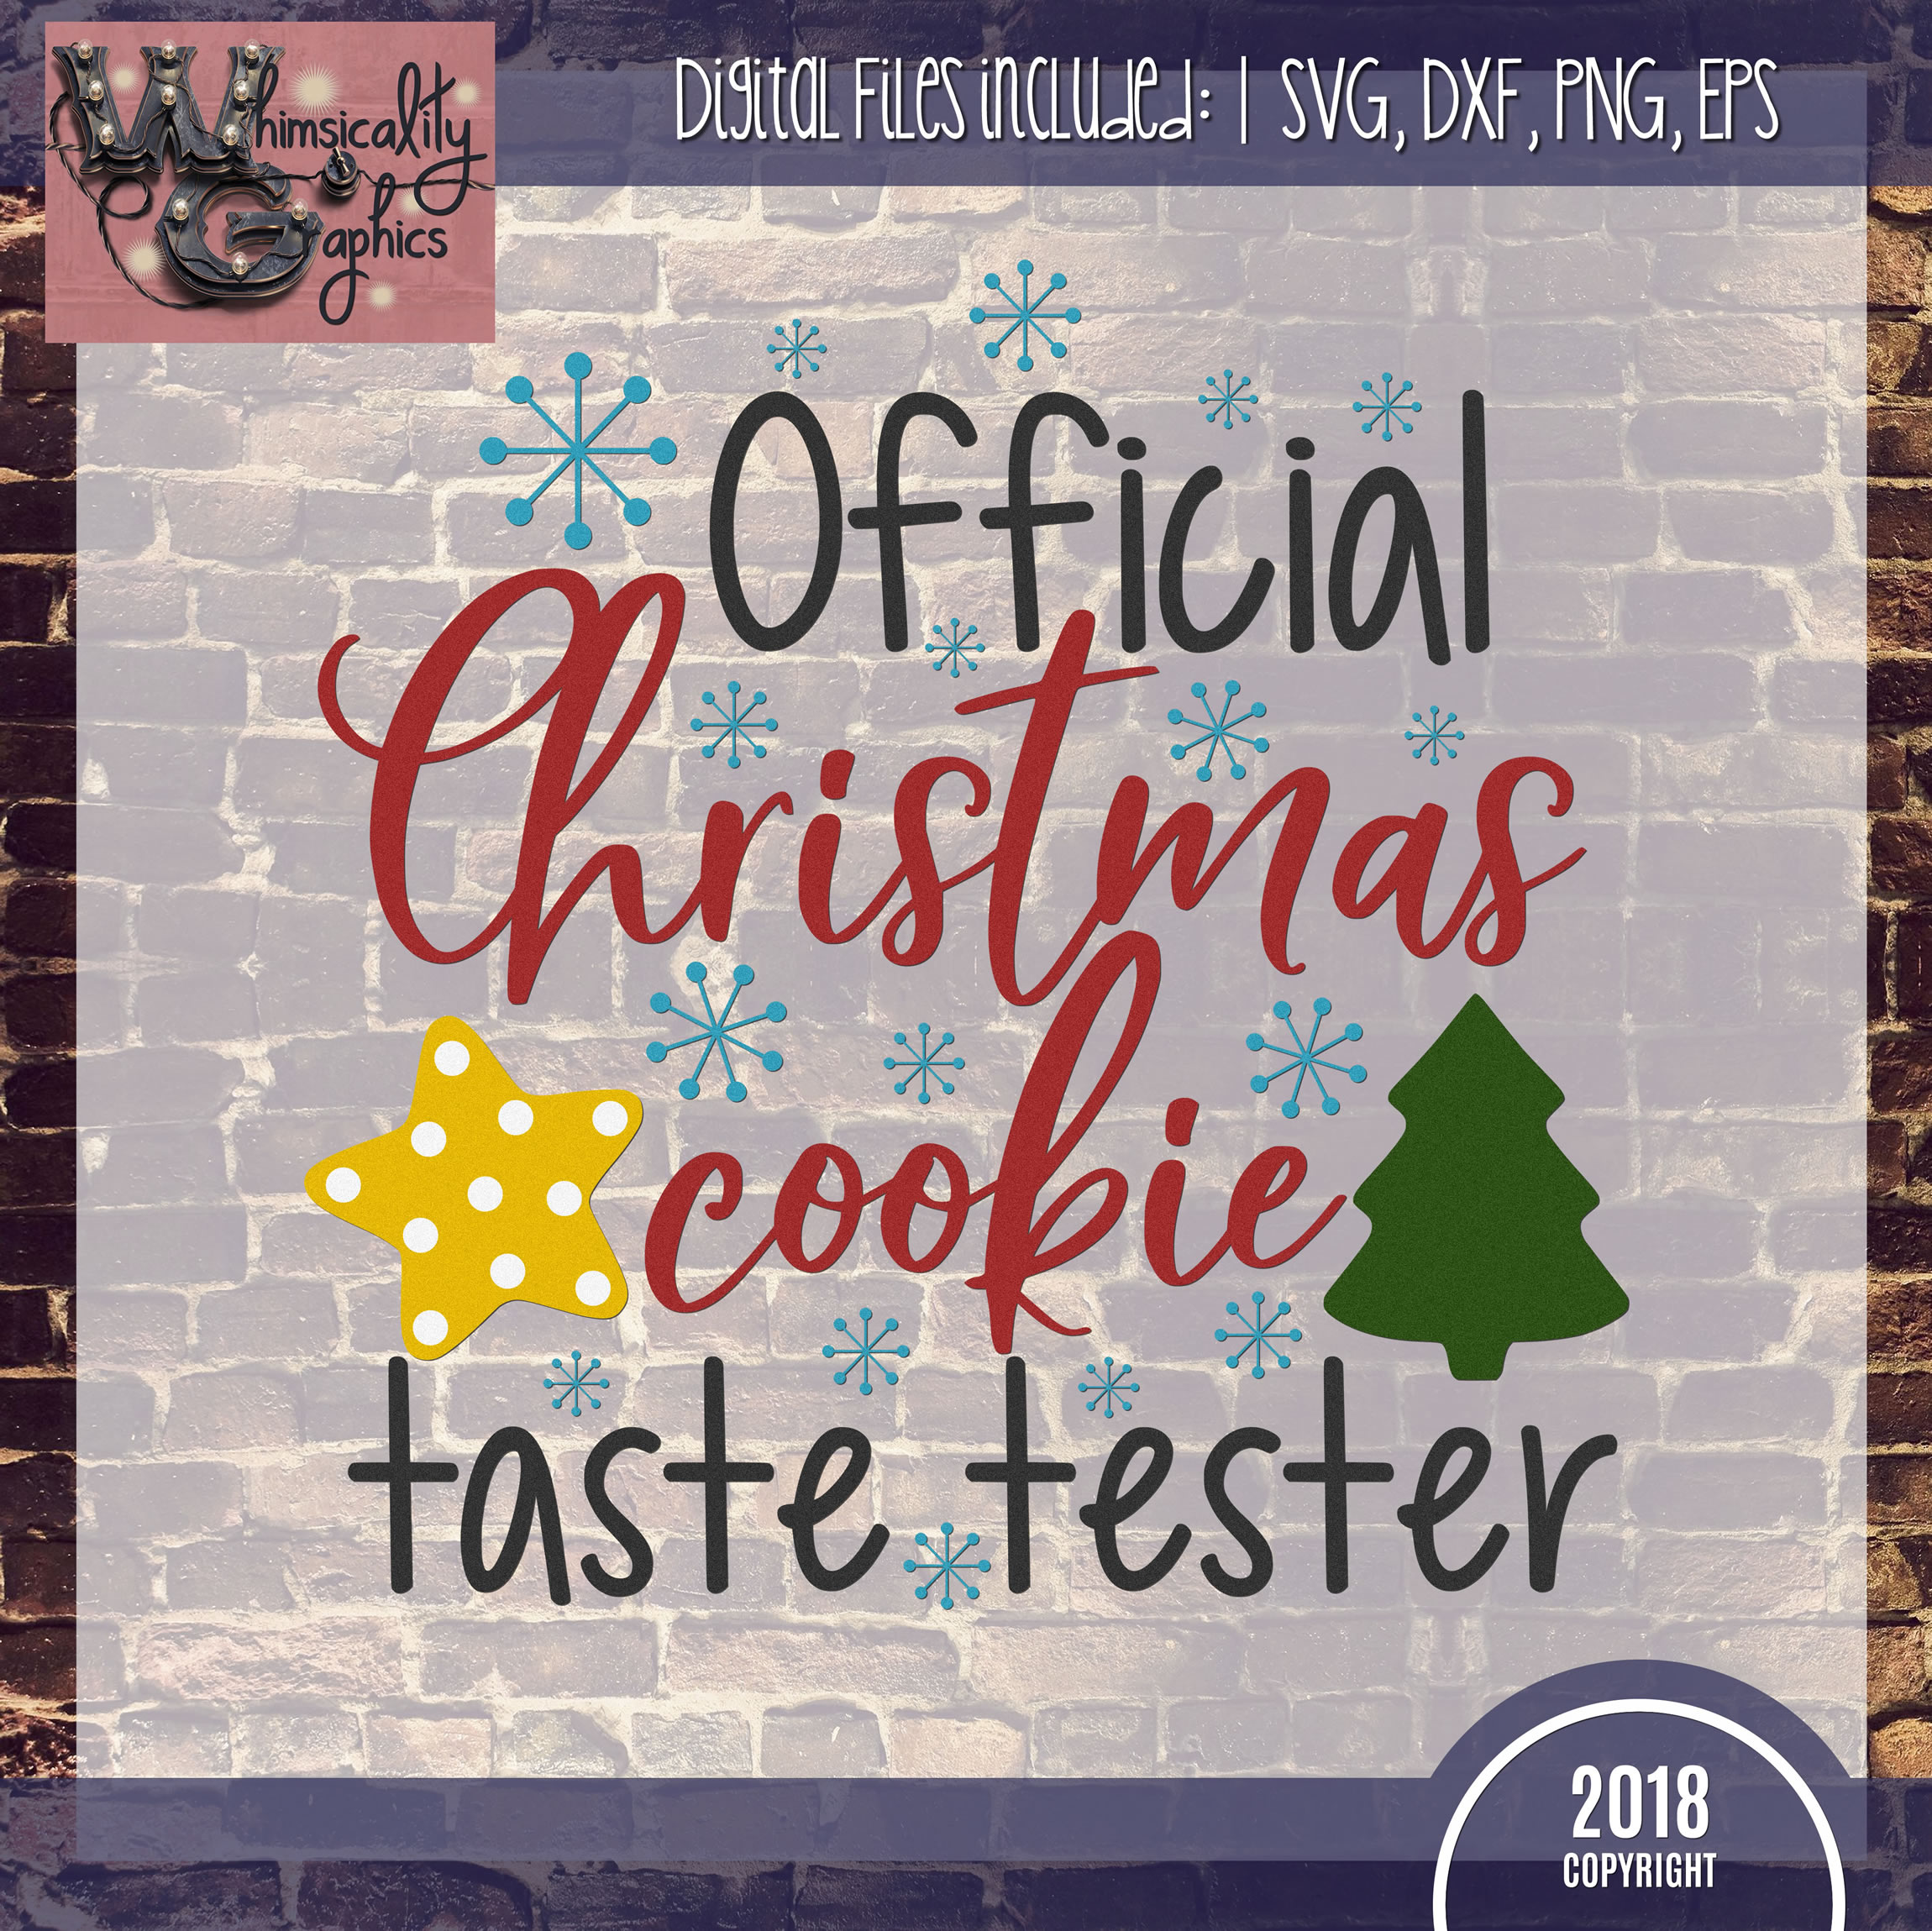 Official Christmas Cookie Test Taster SVG DXF PNG JPG example image 2